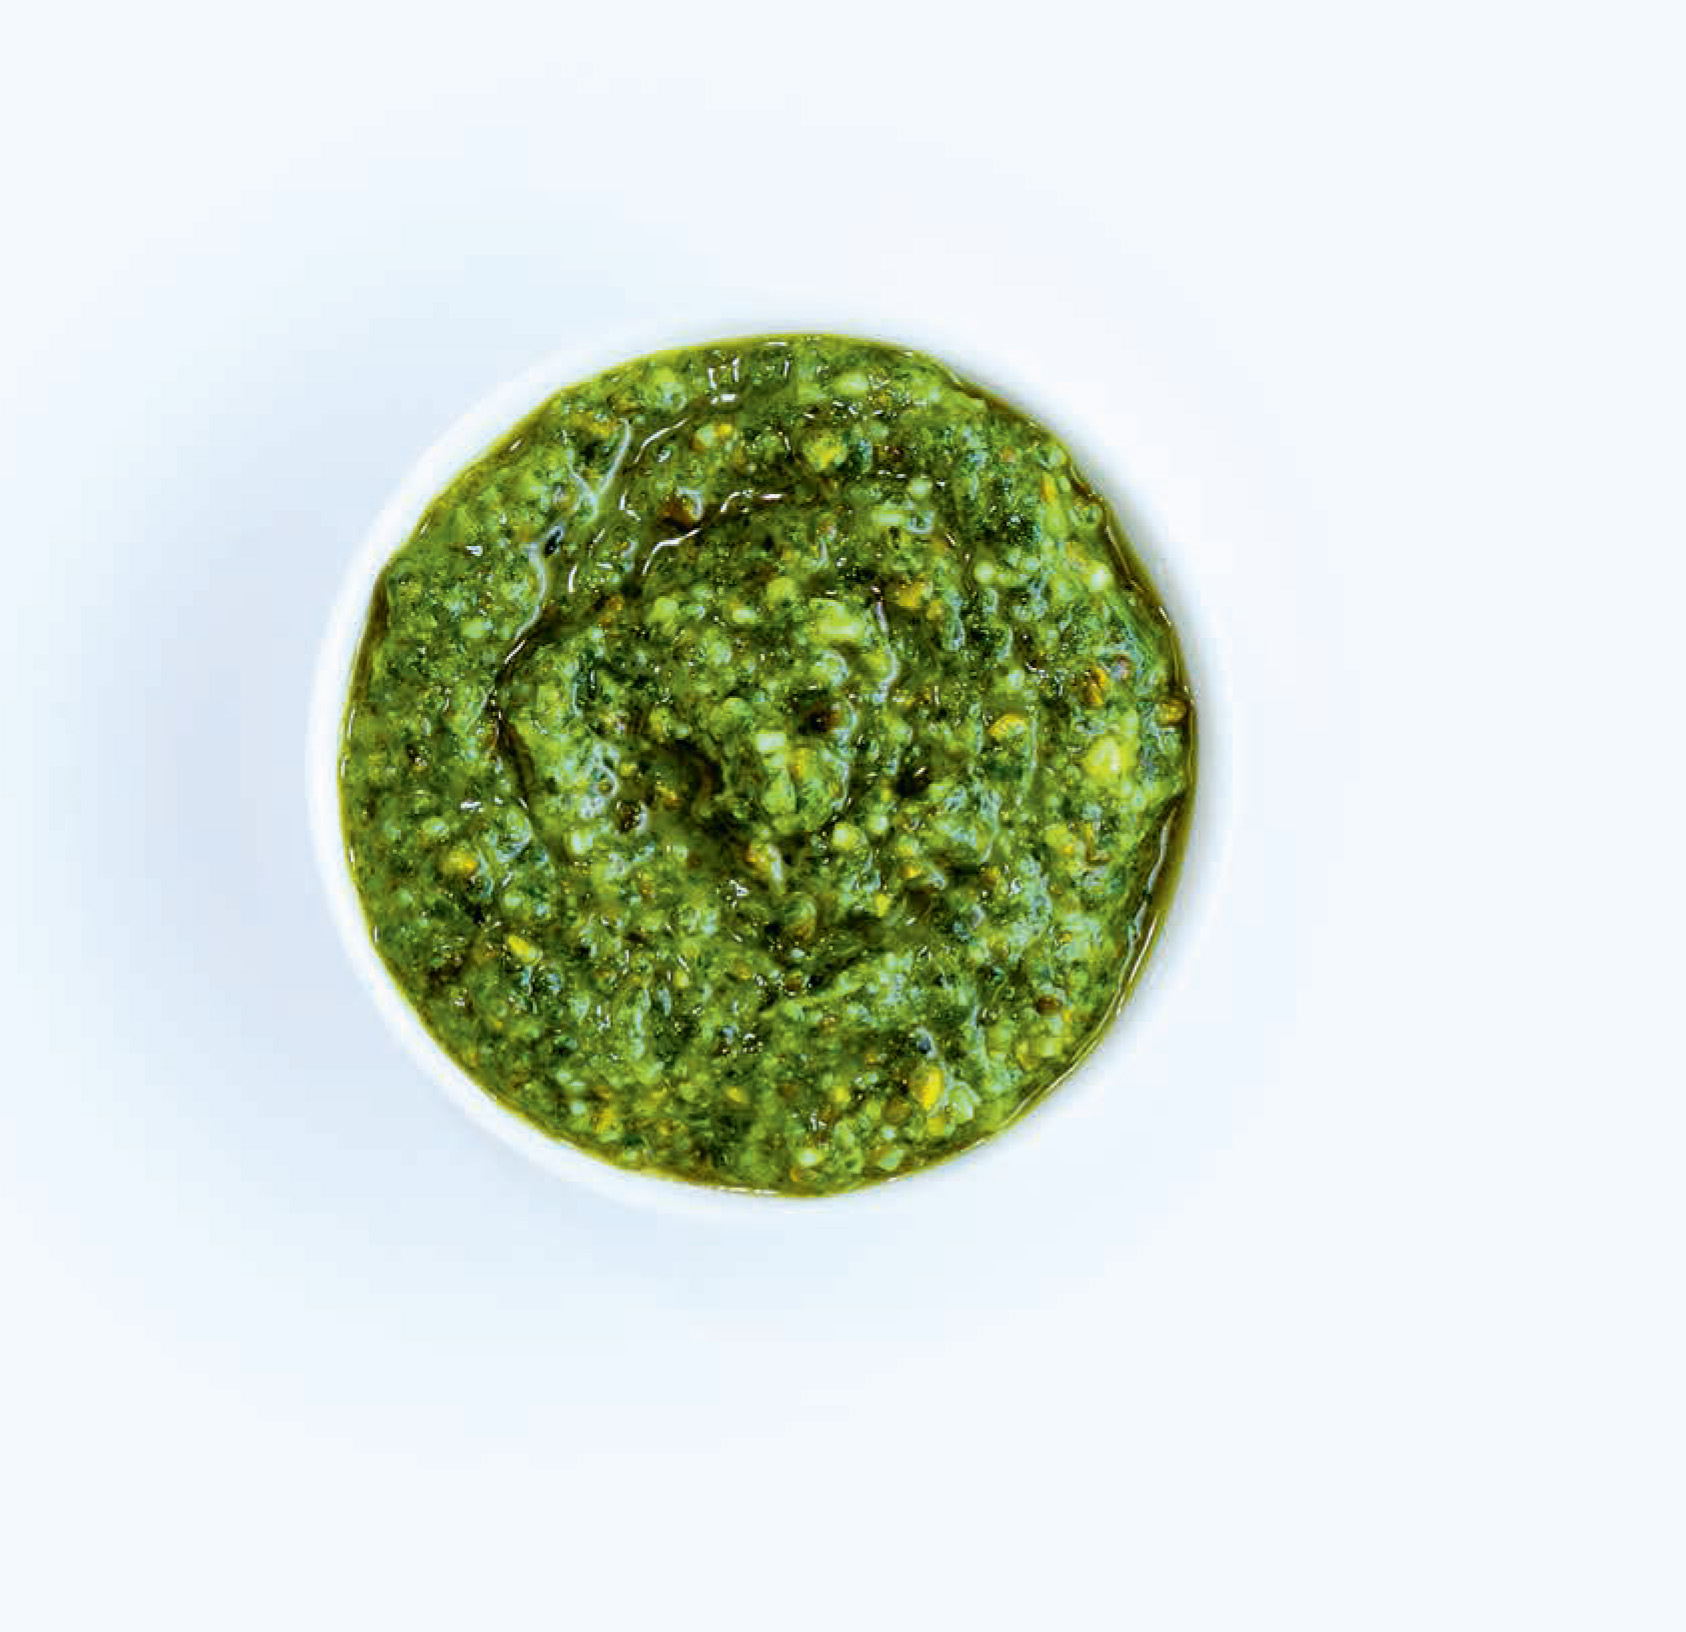 Rocket and pistachio pesto